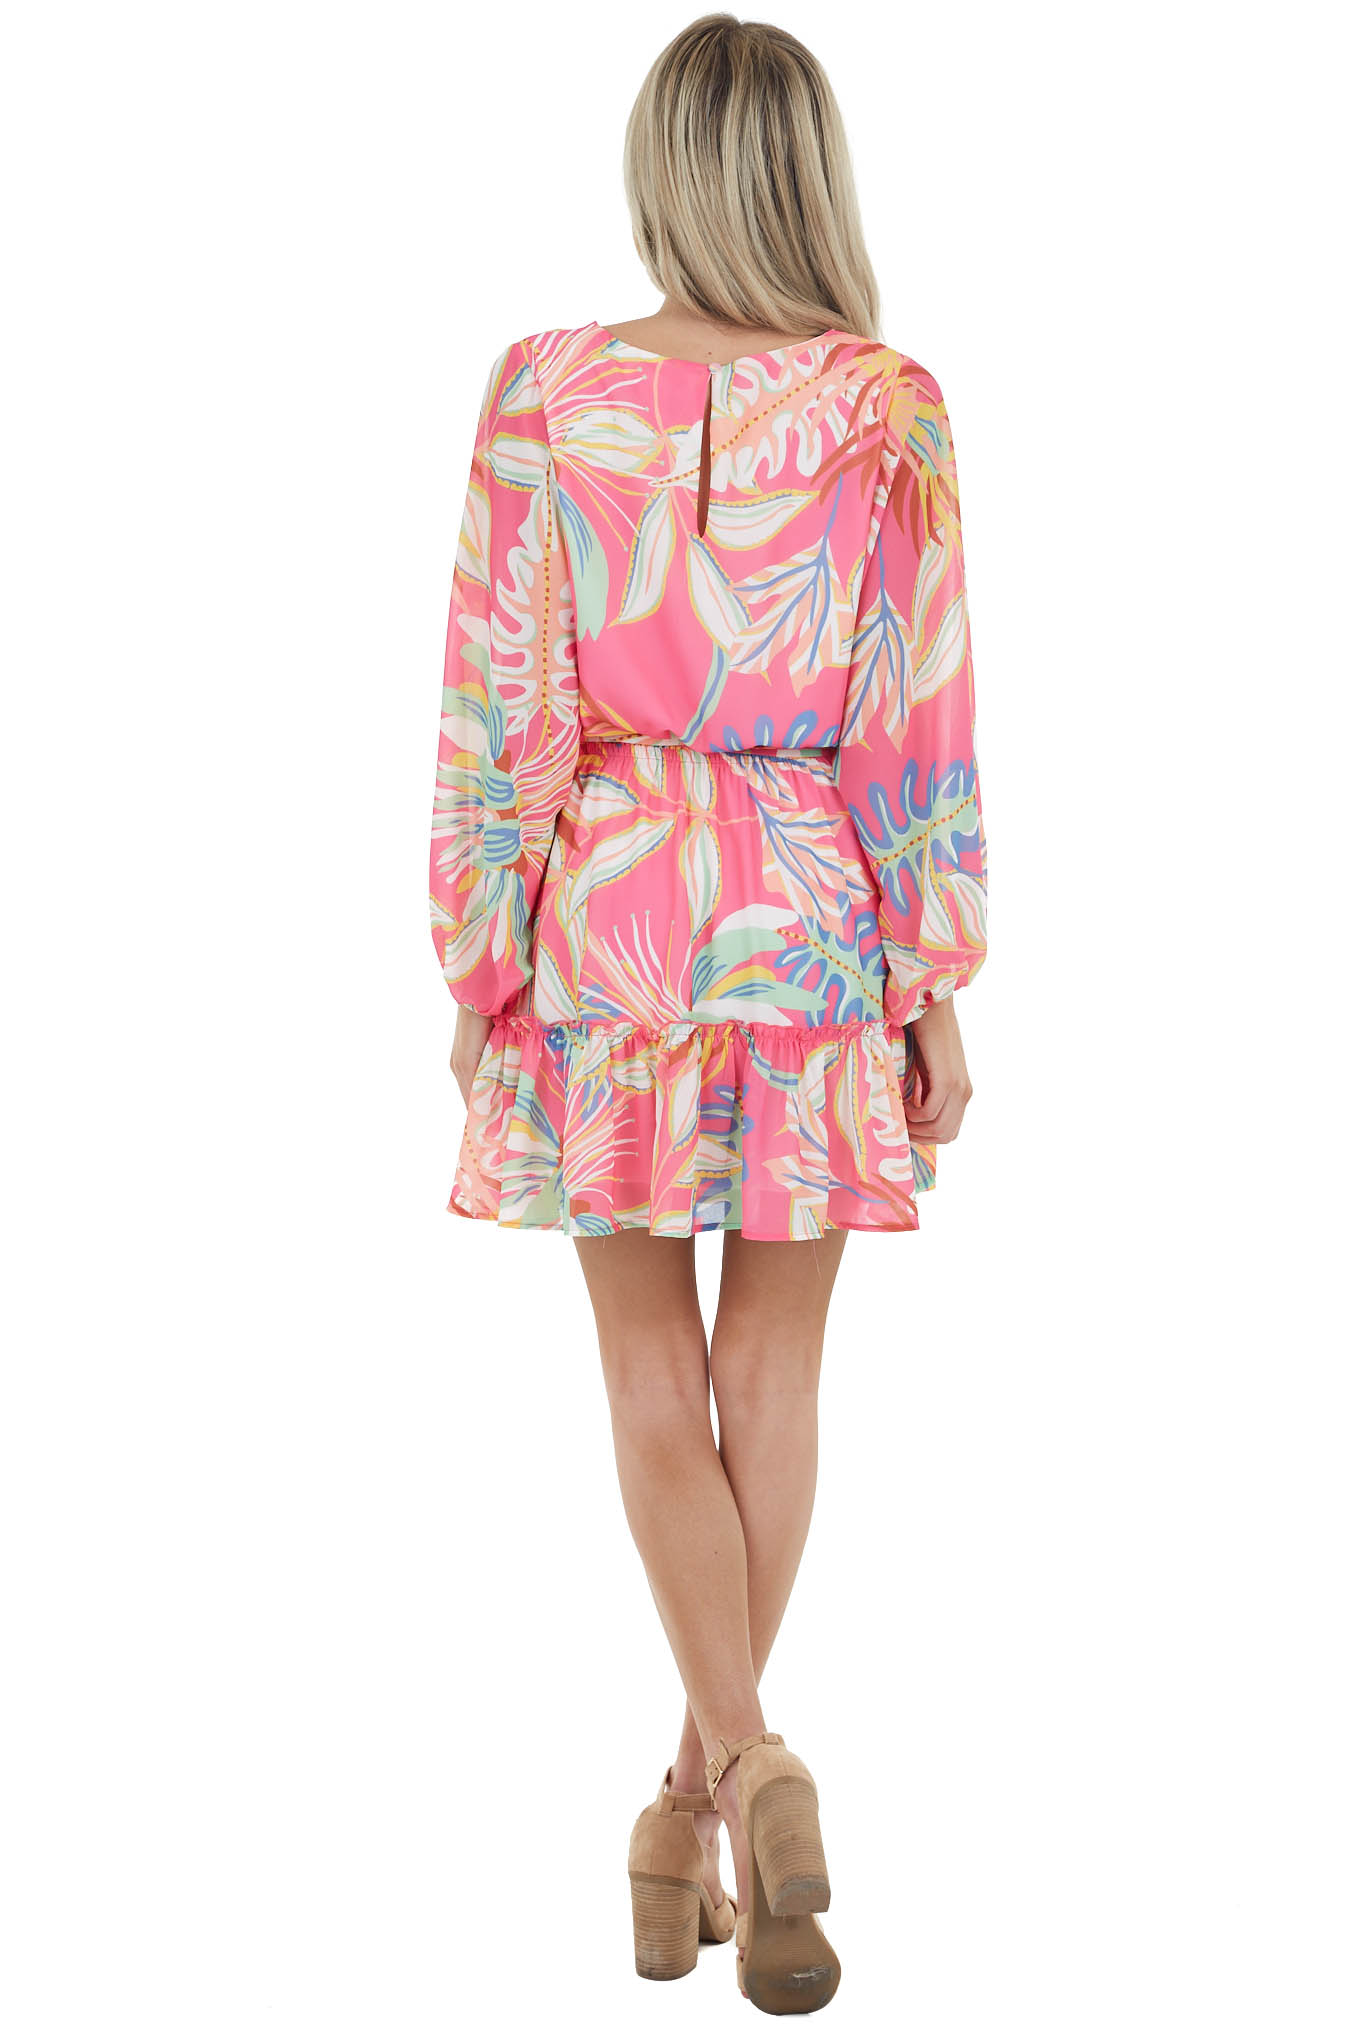 Hot Pink Abstract Print Woven Mini Dress with Keyhole Back